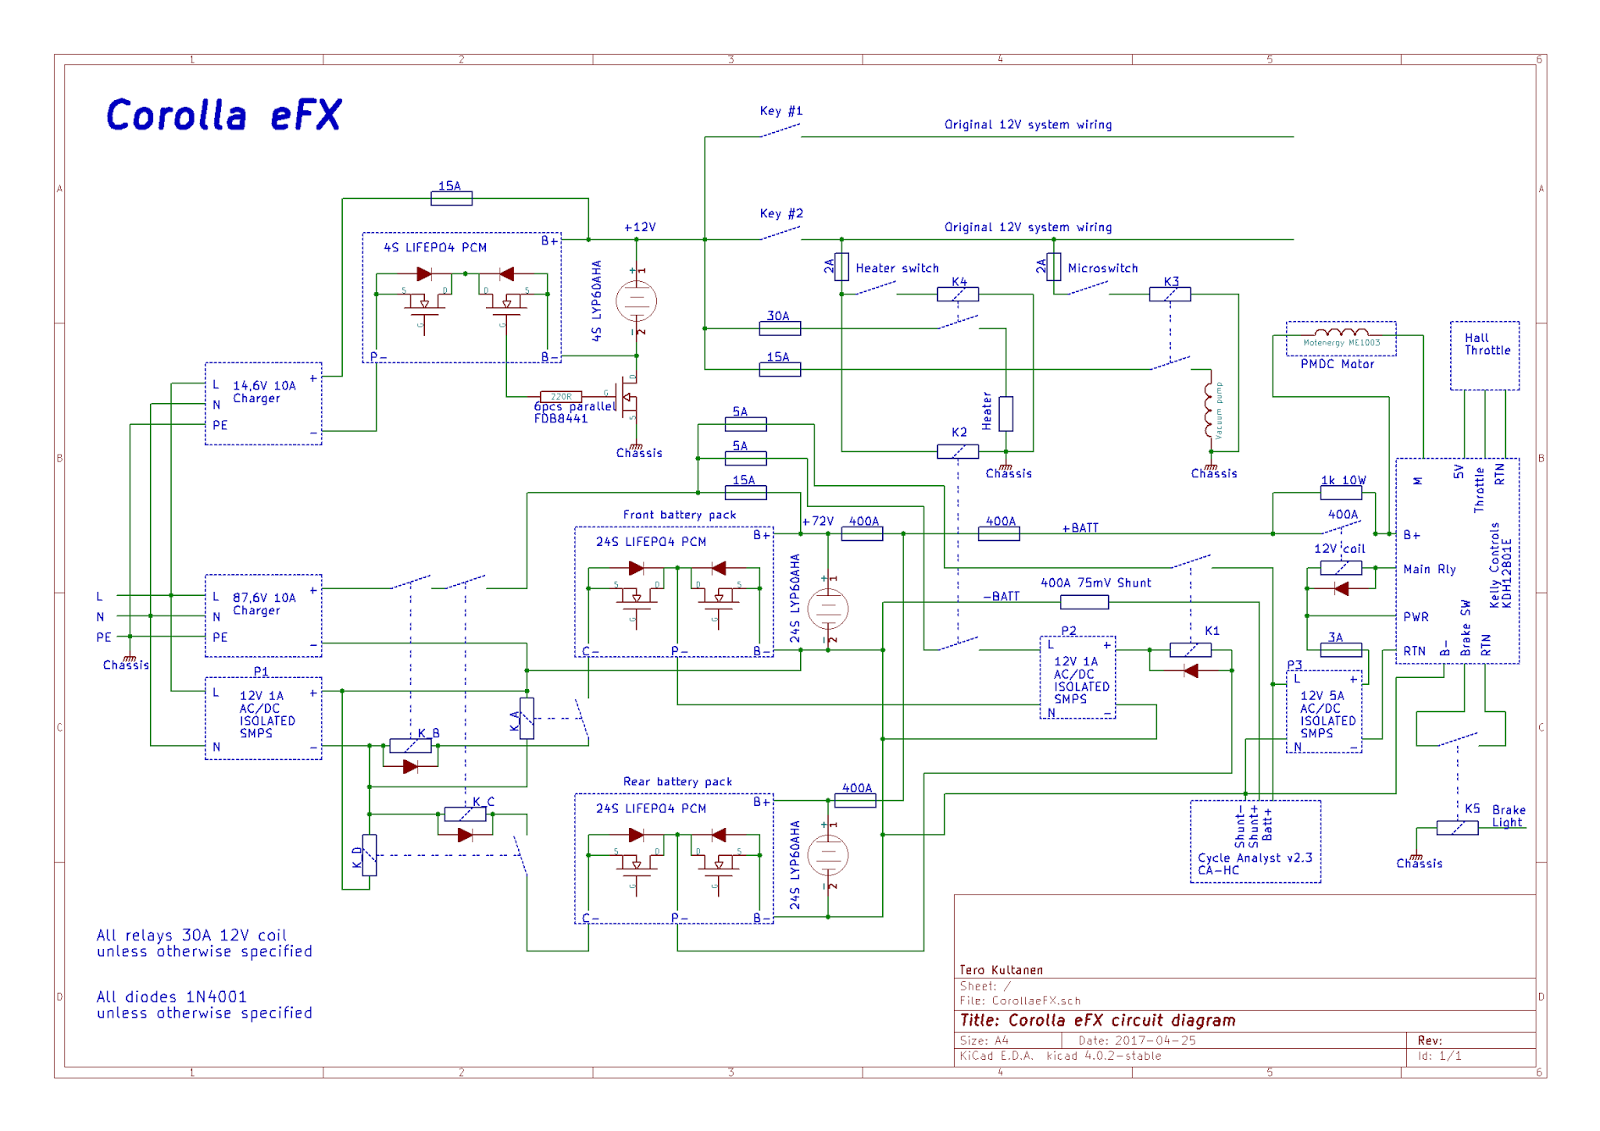 small resolution of circuit diagram update 25 4 2017